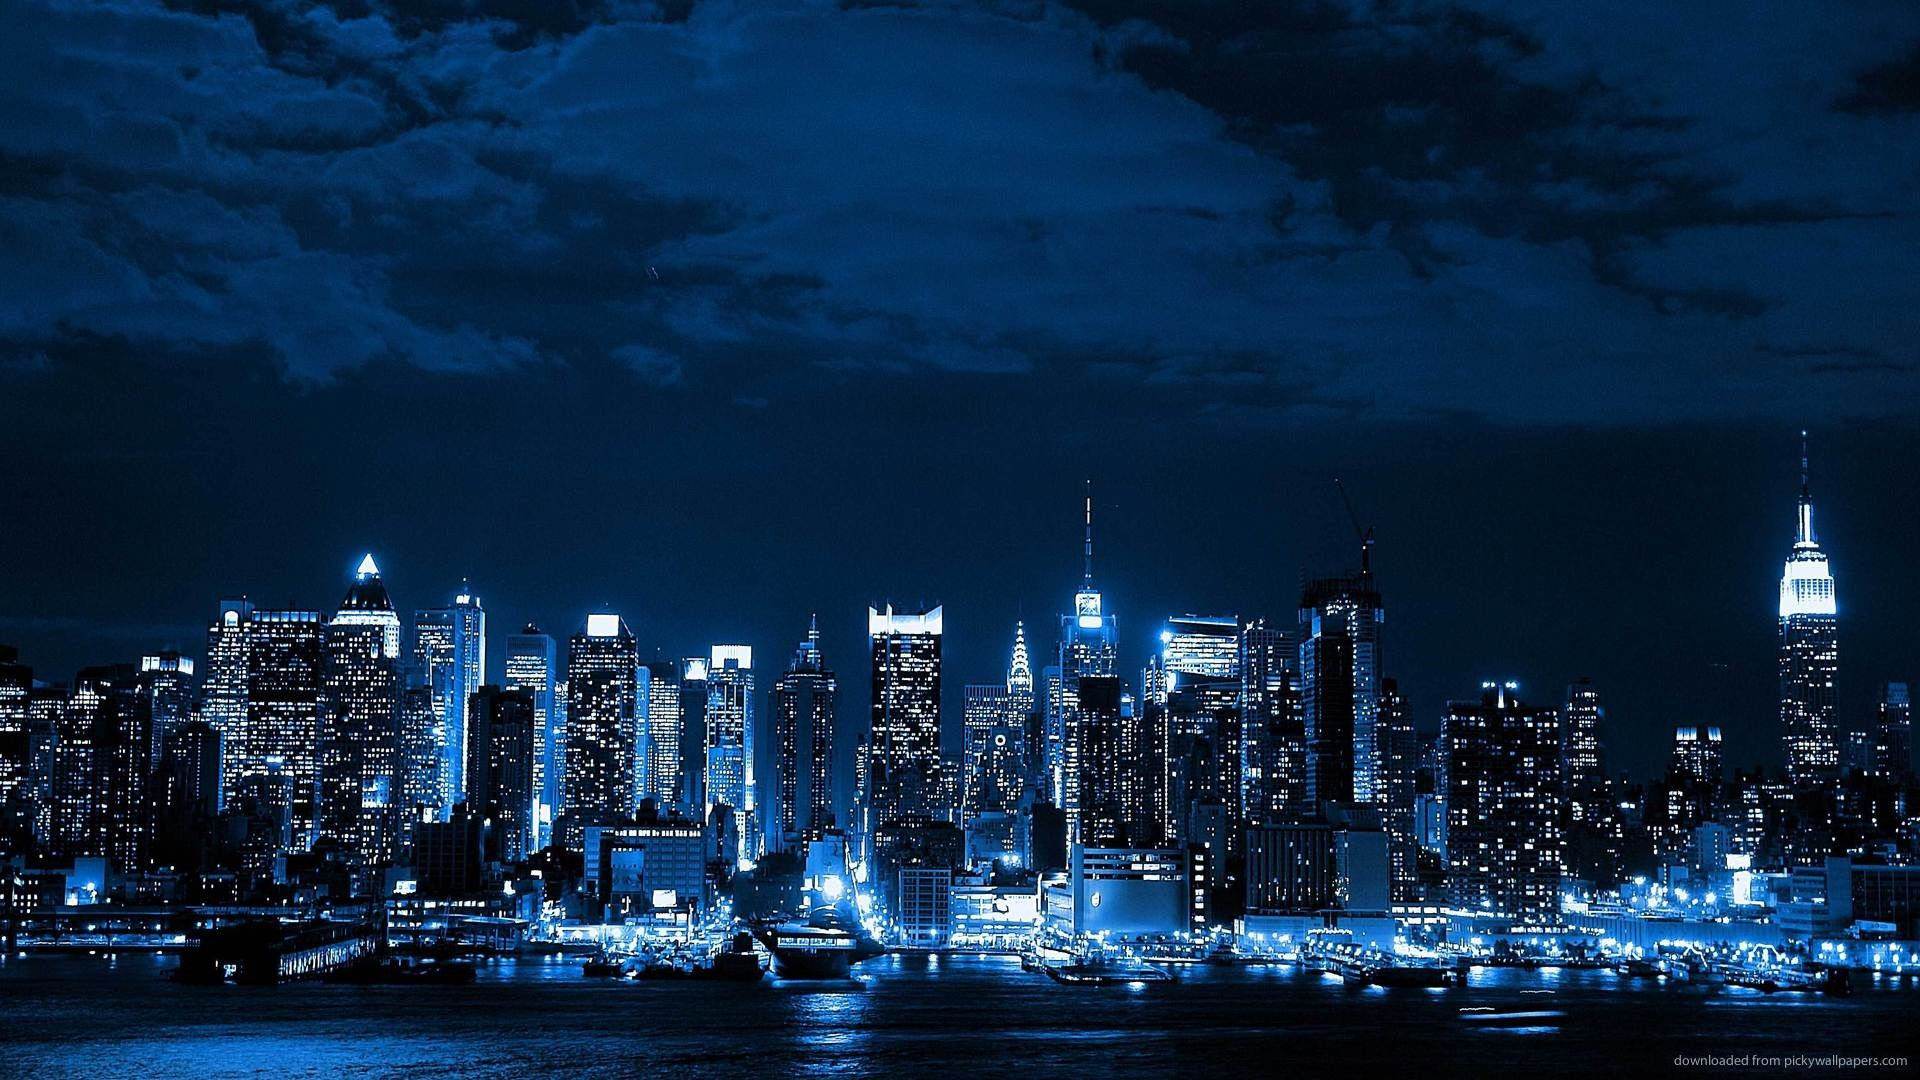 blue cityscapes night lights New York City cities neon